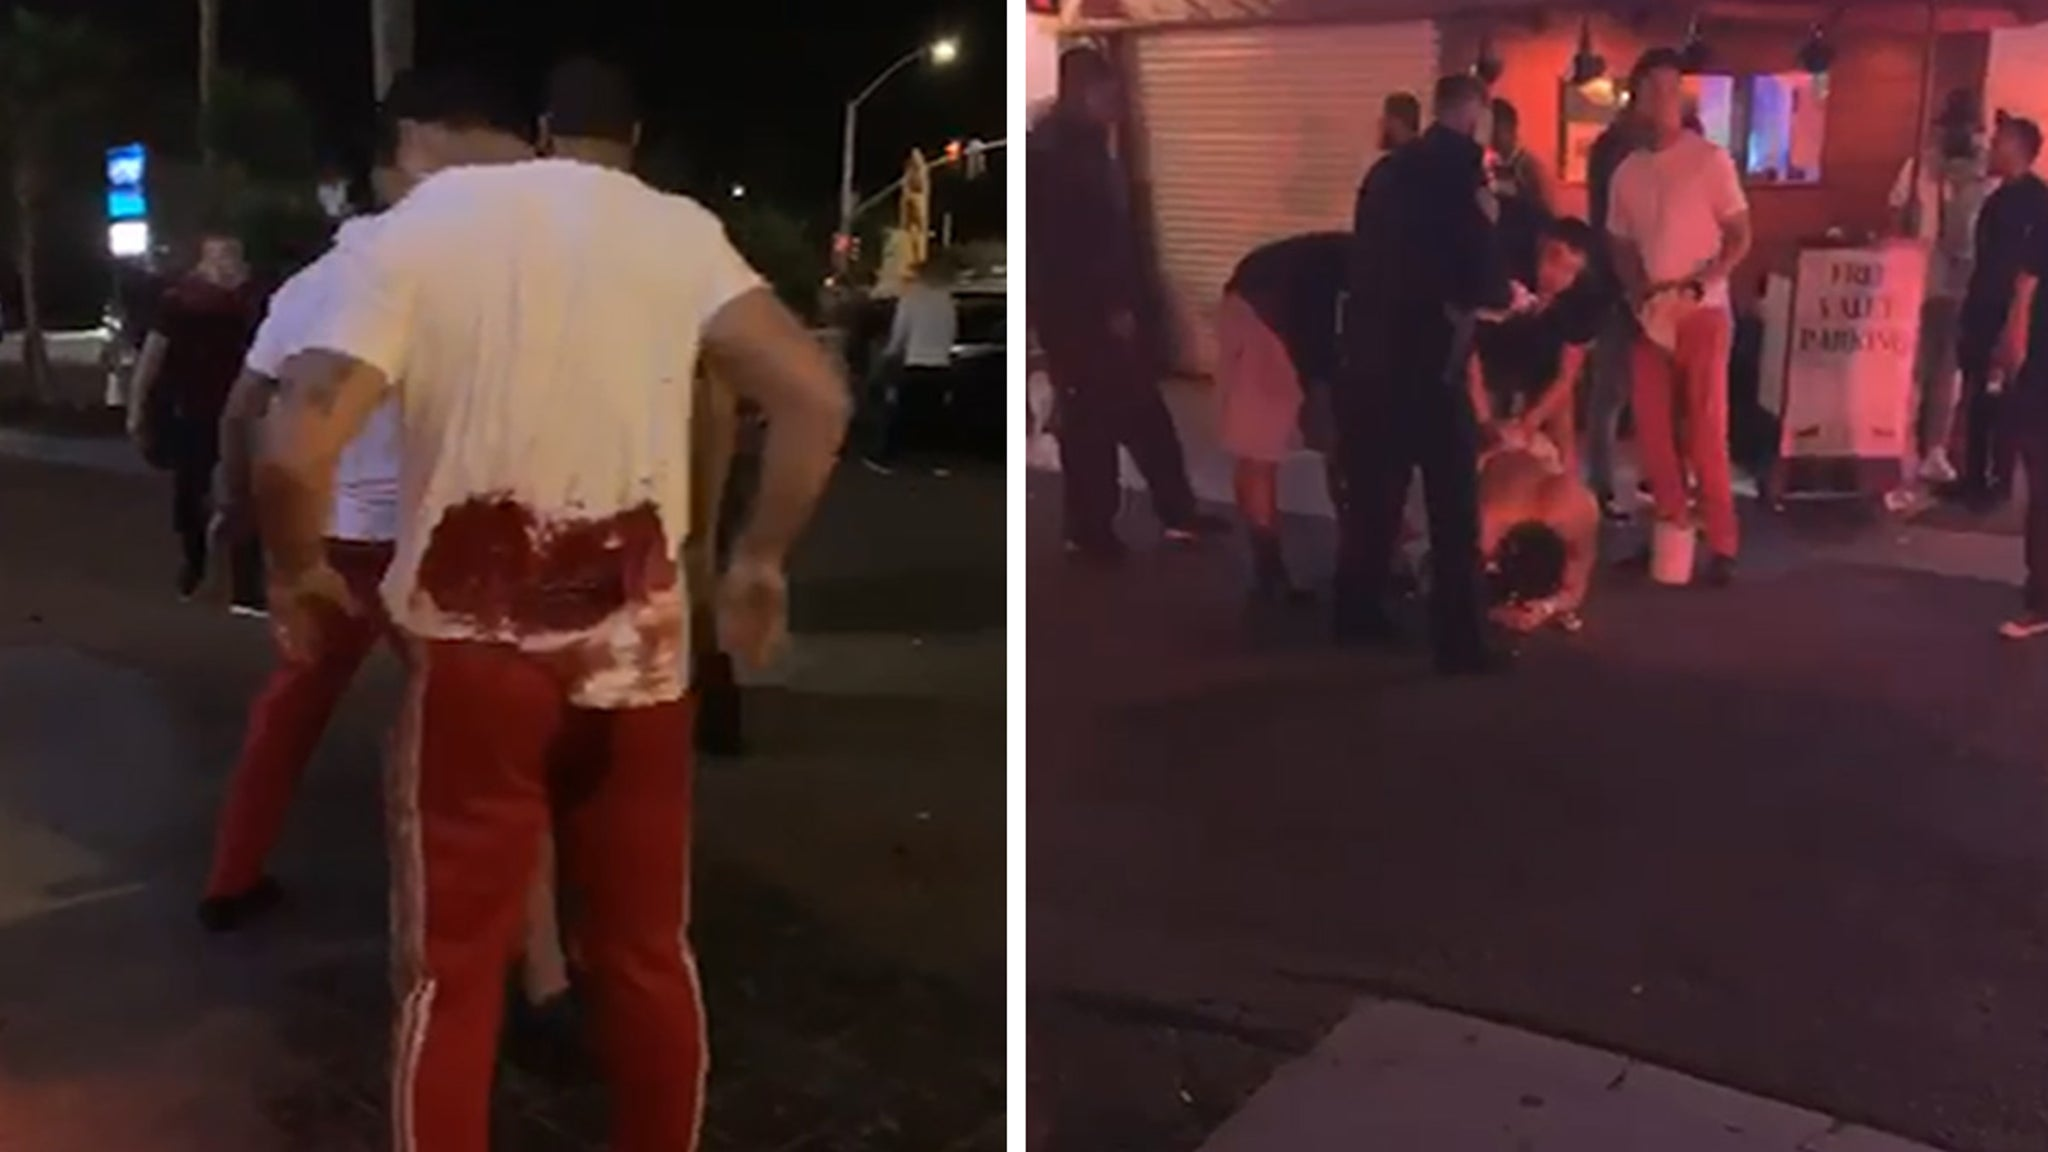 MLB Star Tommy Pham Stabbing Incident, Video Shows Bloody Aftermath